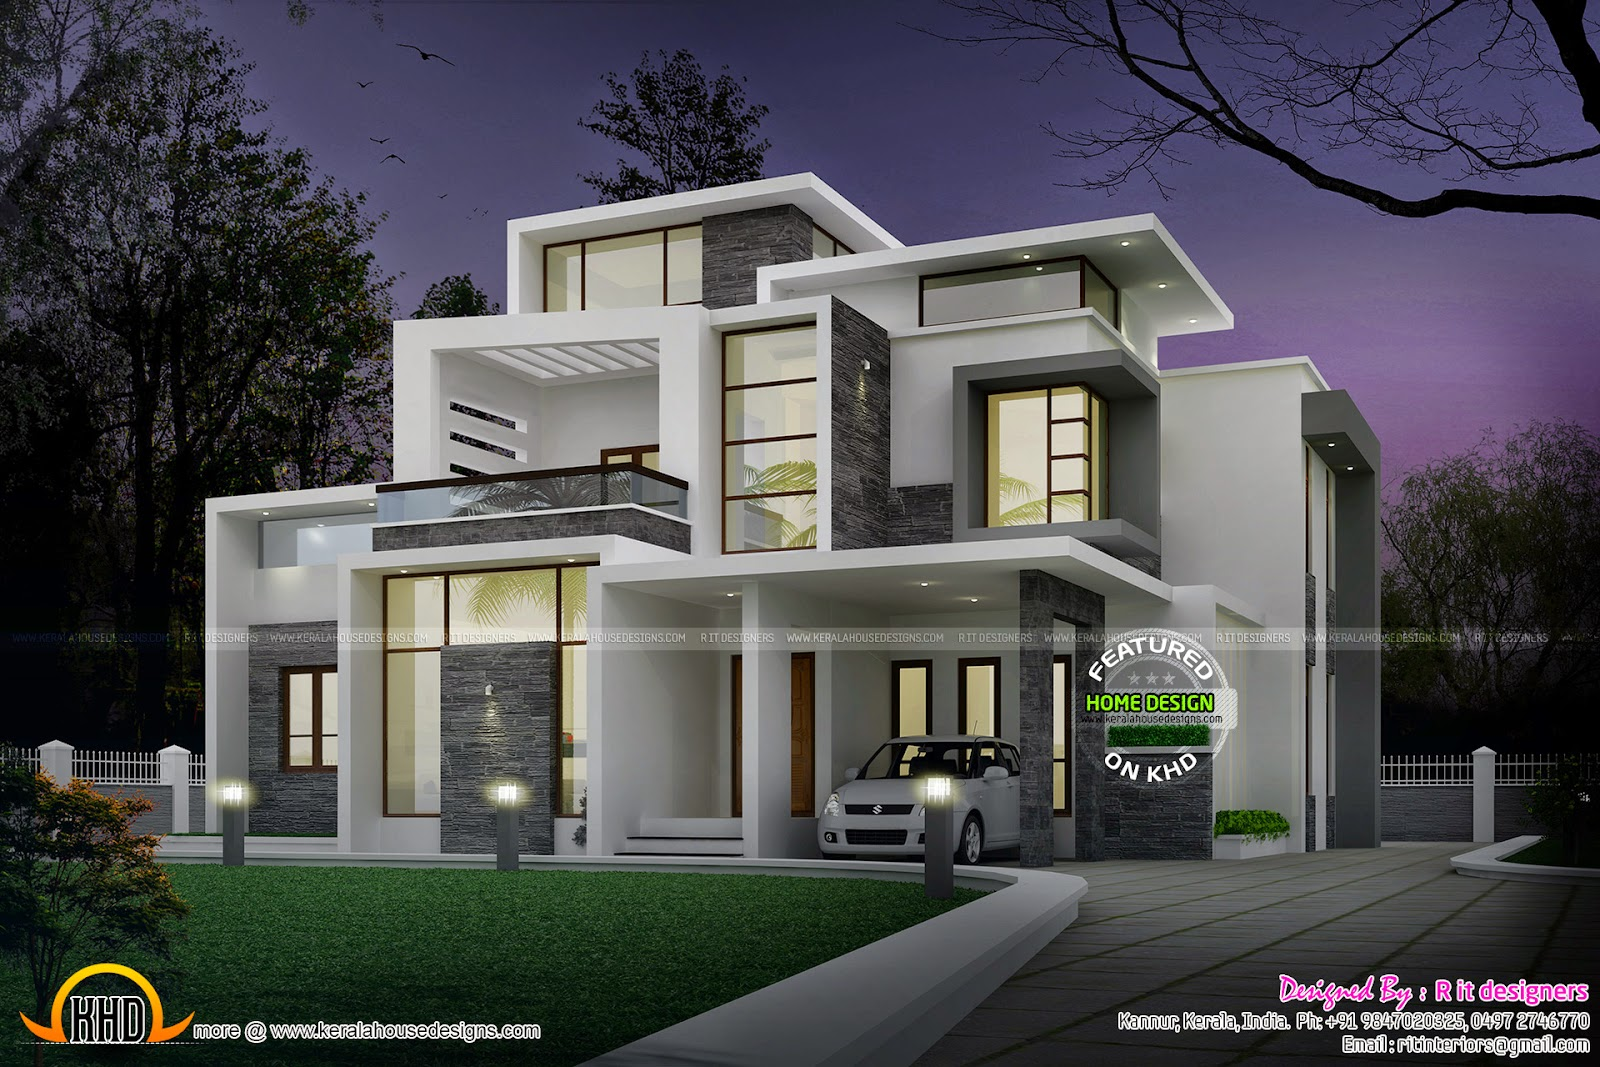 Grand contemporary home design kerala home design and for 5000 sq ft modern house plans